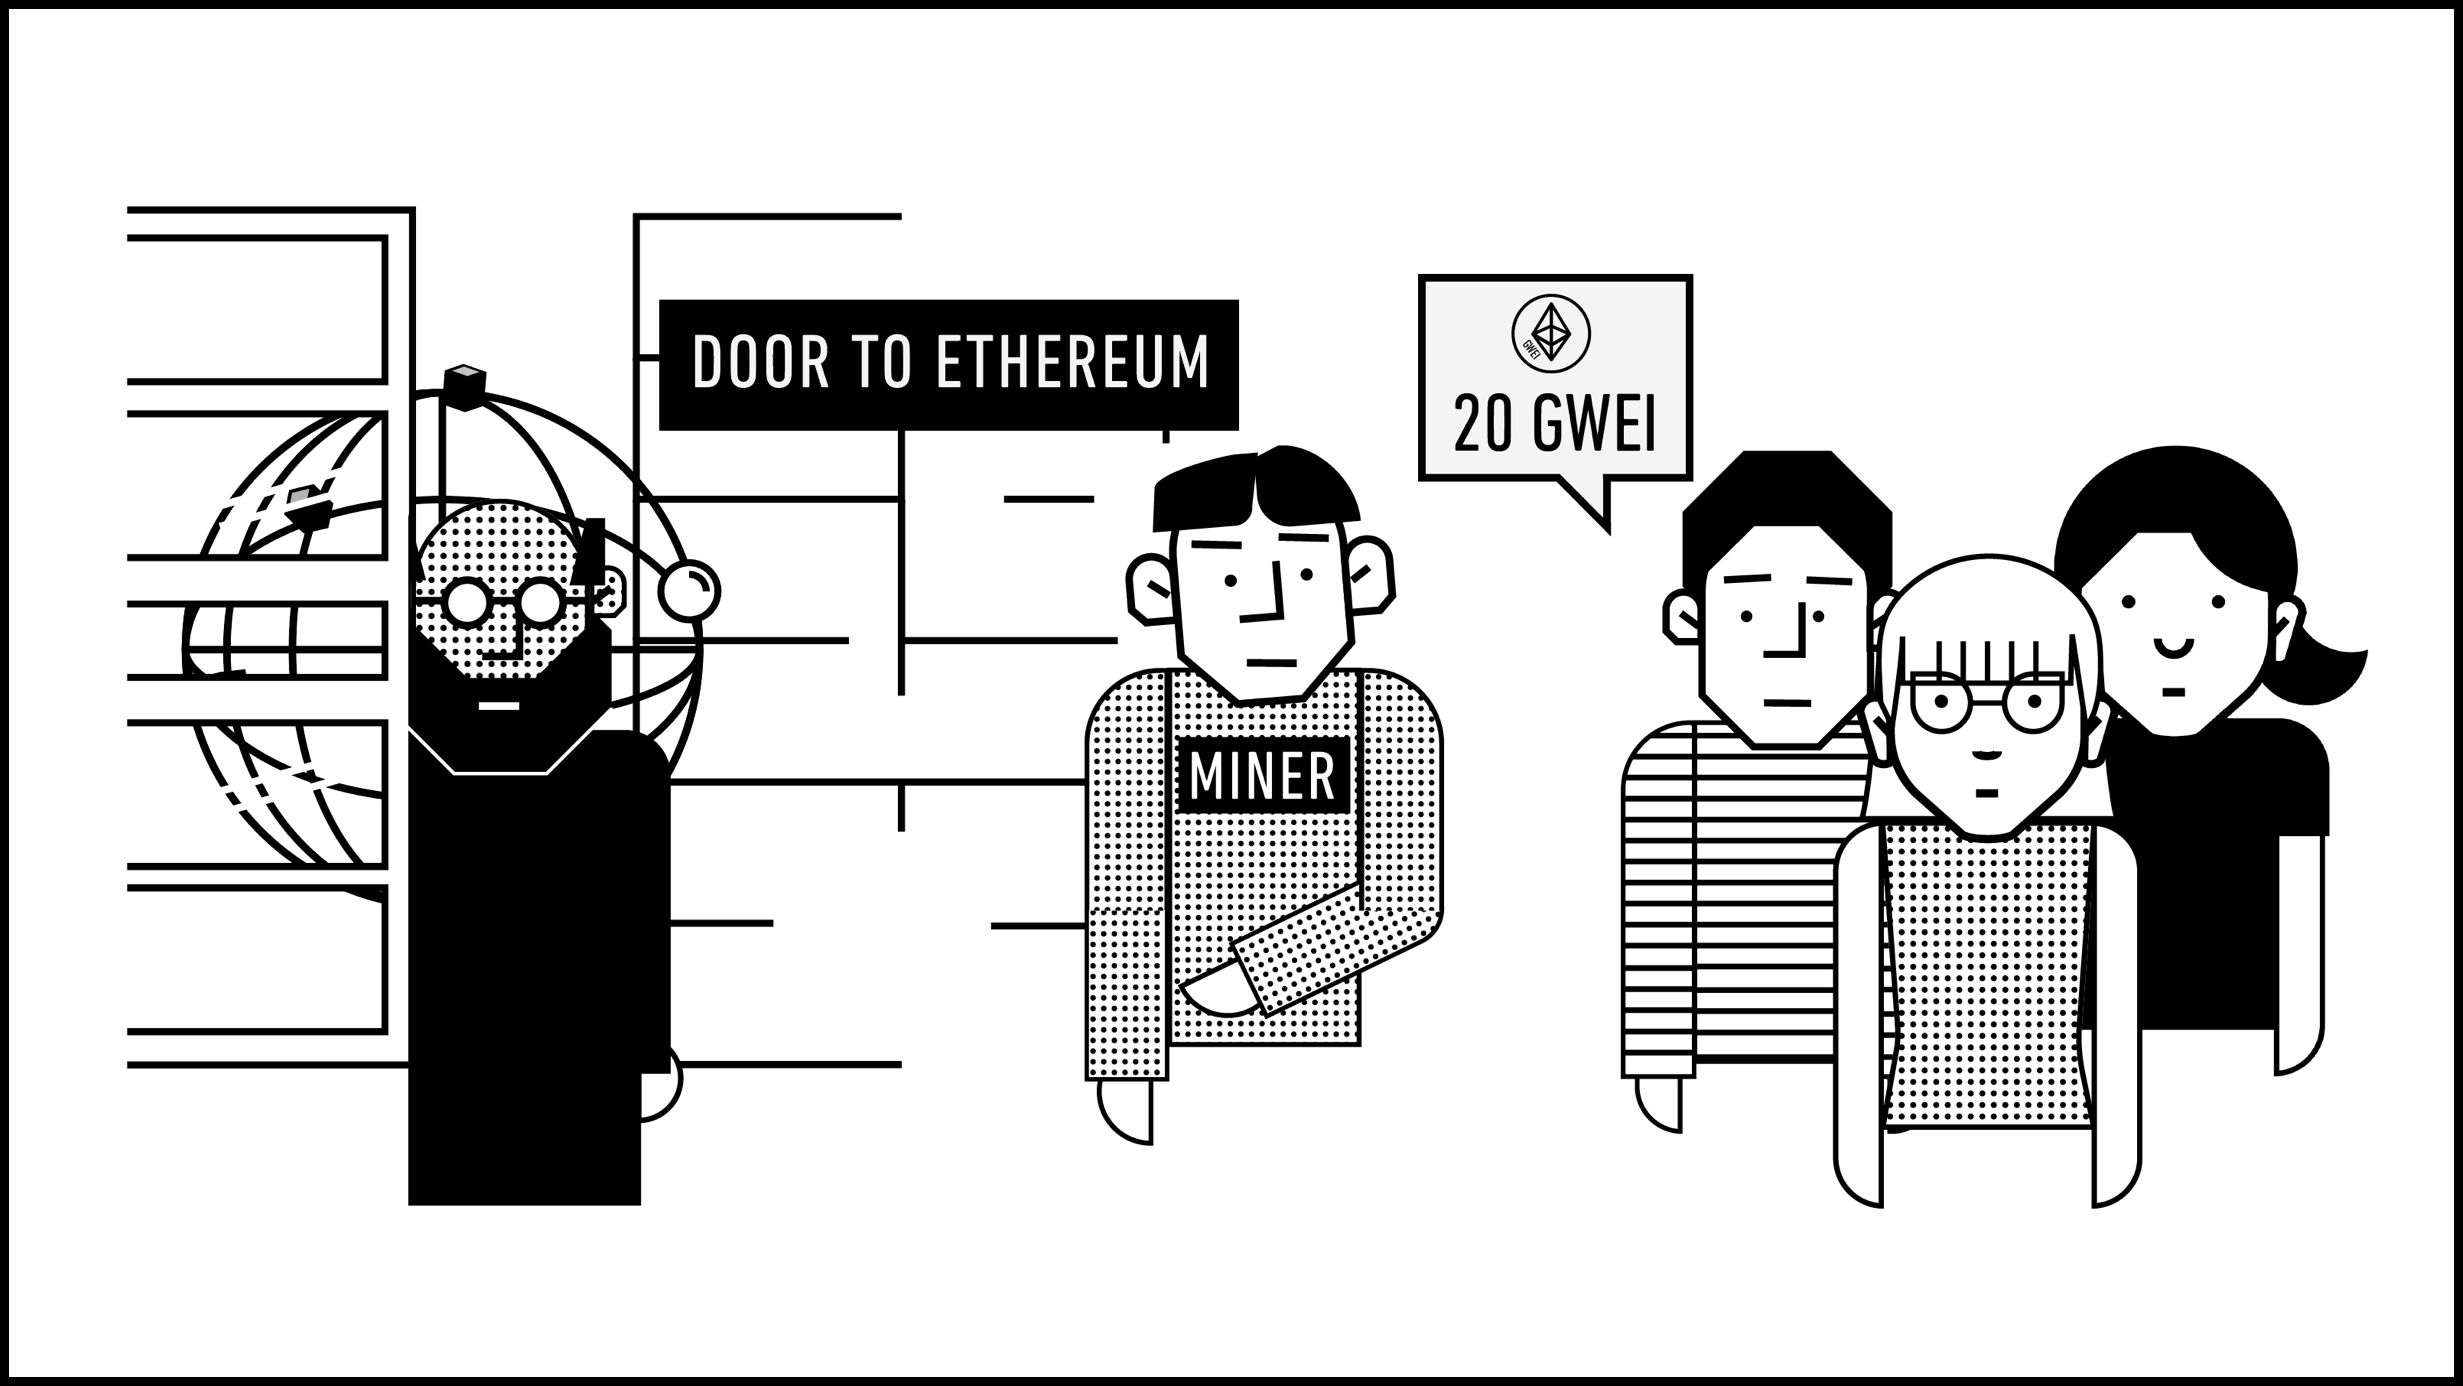 Door to Ethereum